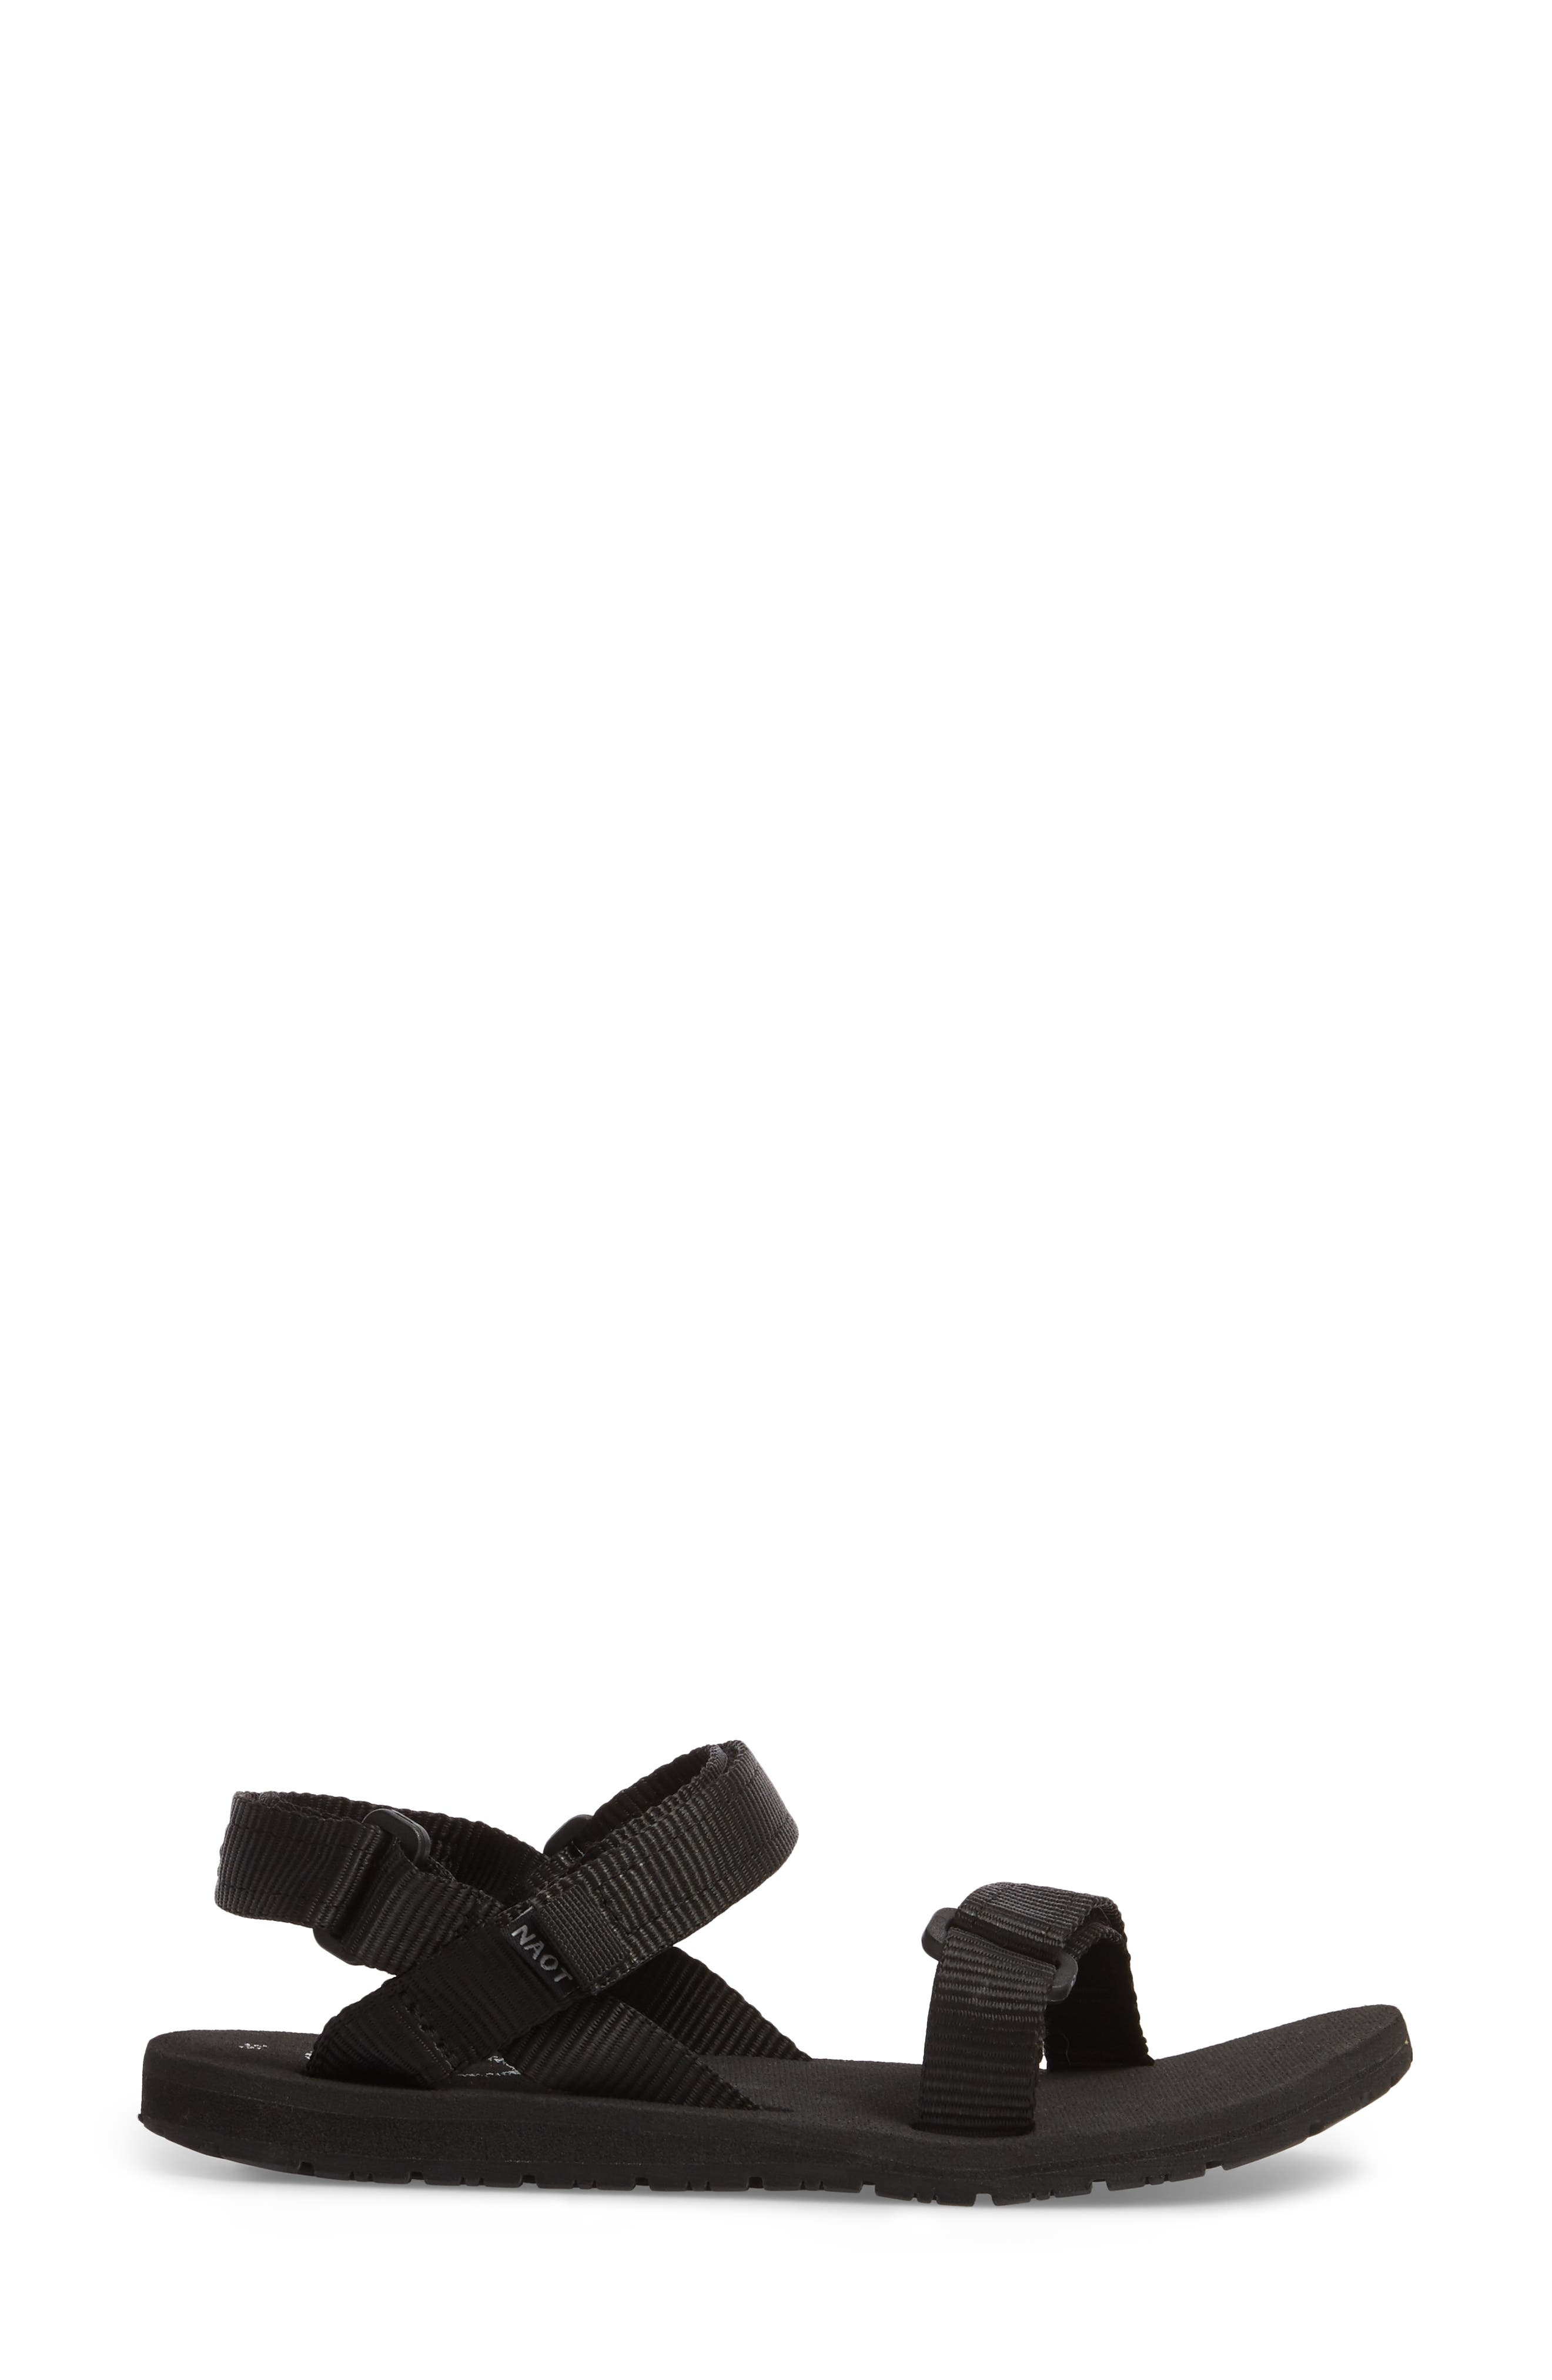 Haven Waterproof Sandal,                             Alternate thumbnail 3, color,                             BLACK FABRIC